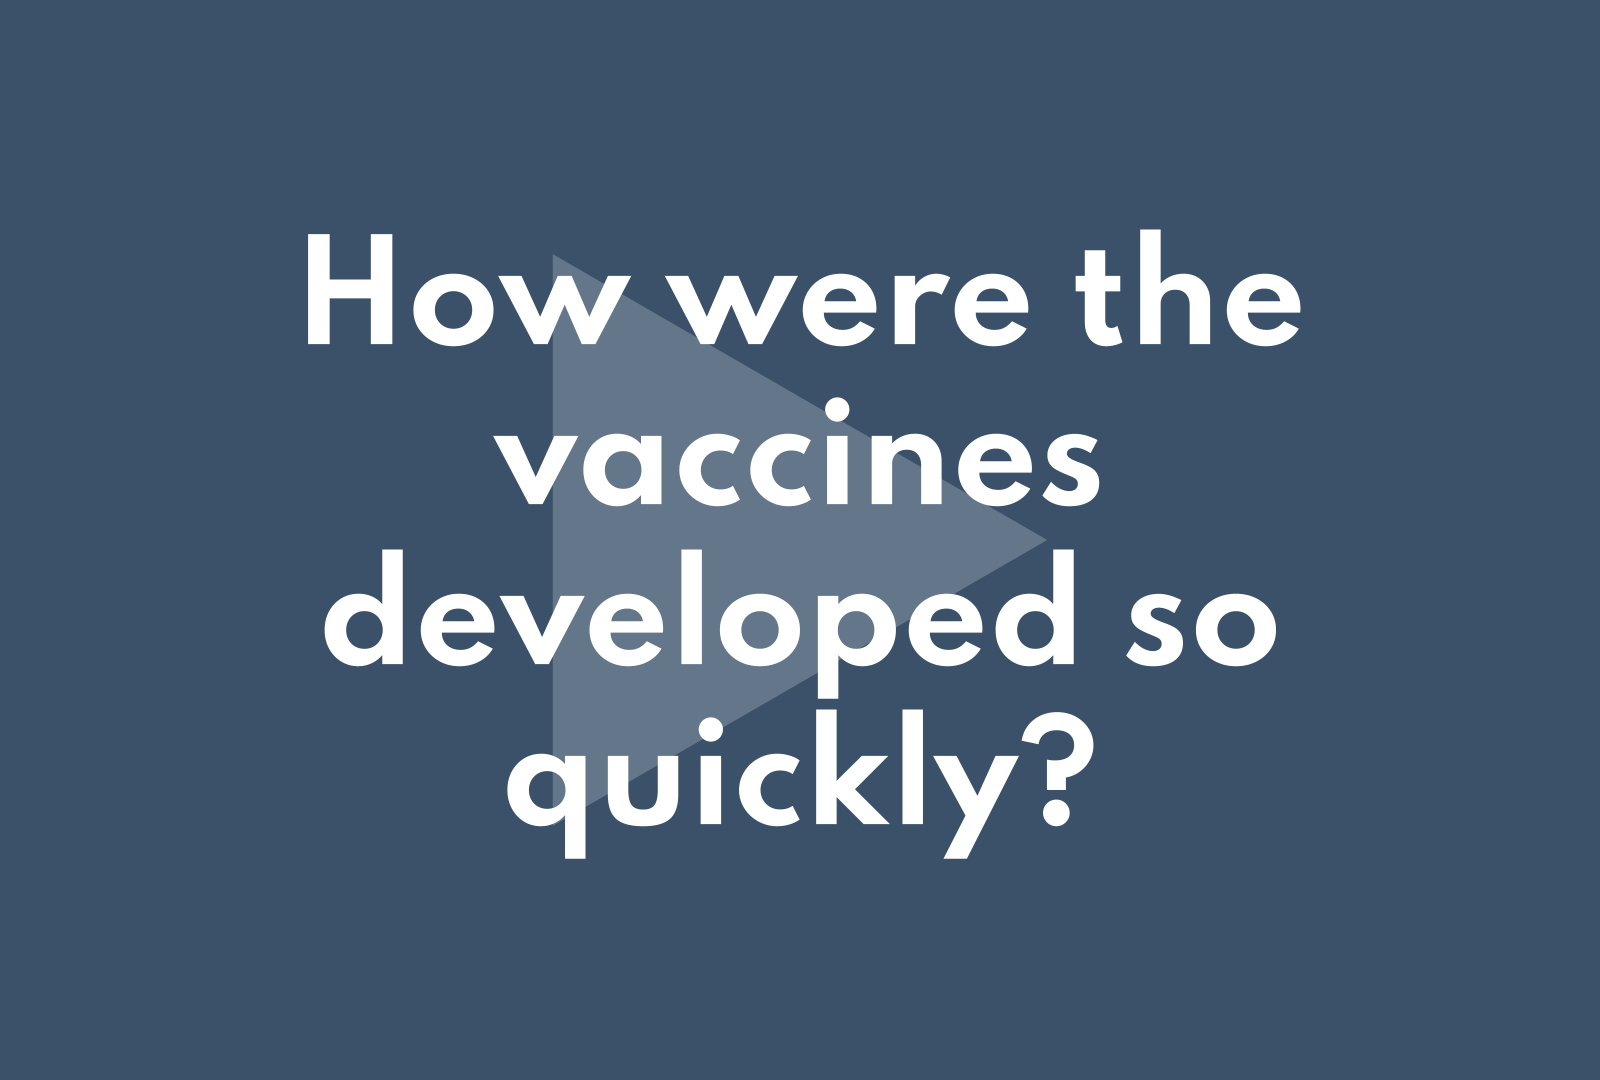 How were the vaccines developed so quickly?